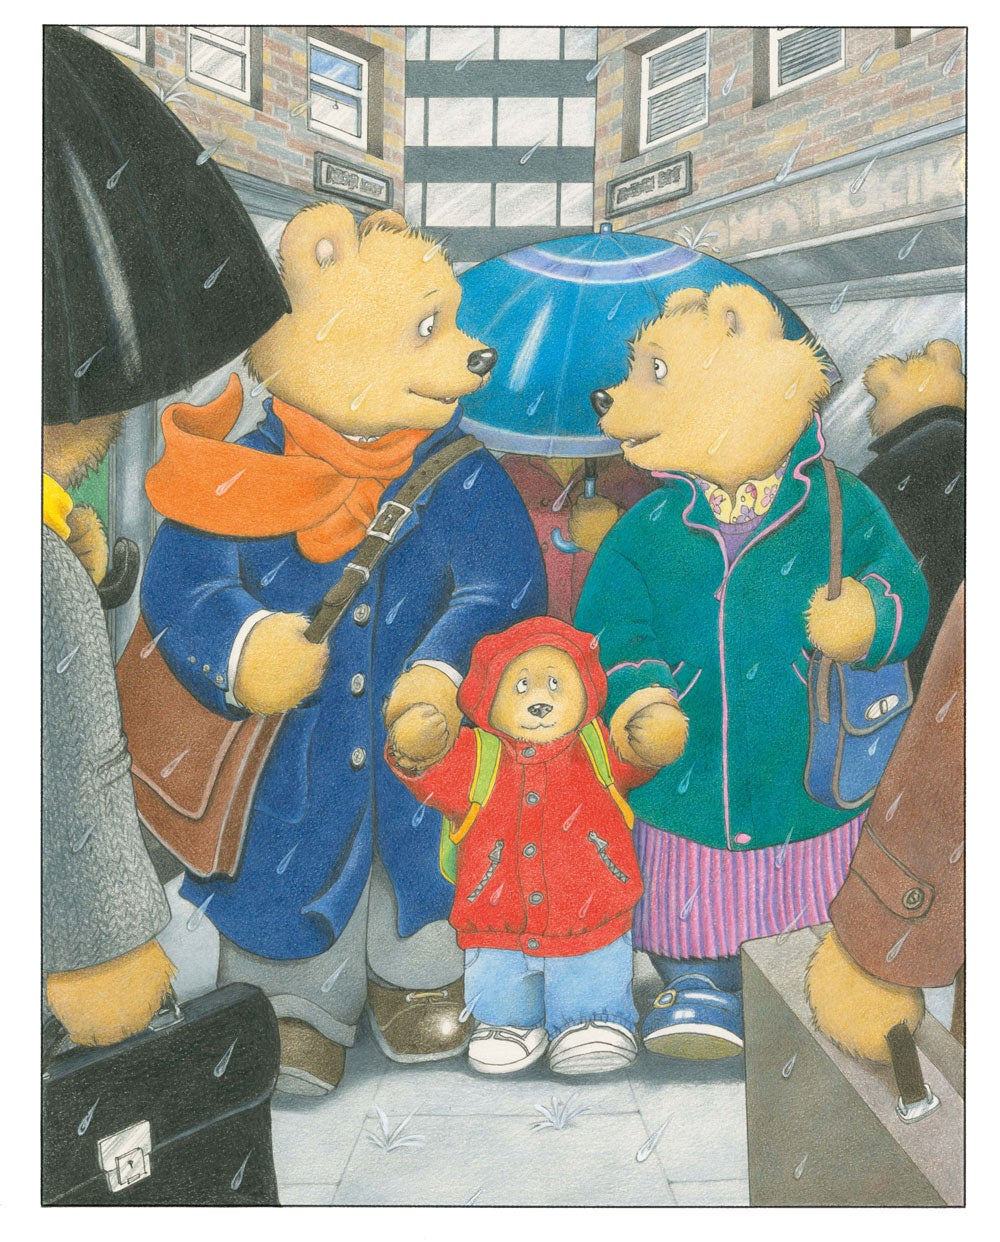 An illustration from Jill Murphy's Just One of Those Days showing a father bear a mother bear and a baby bear standing in the rain